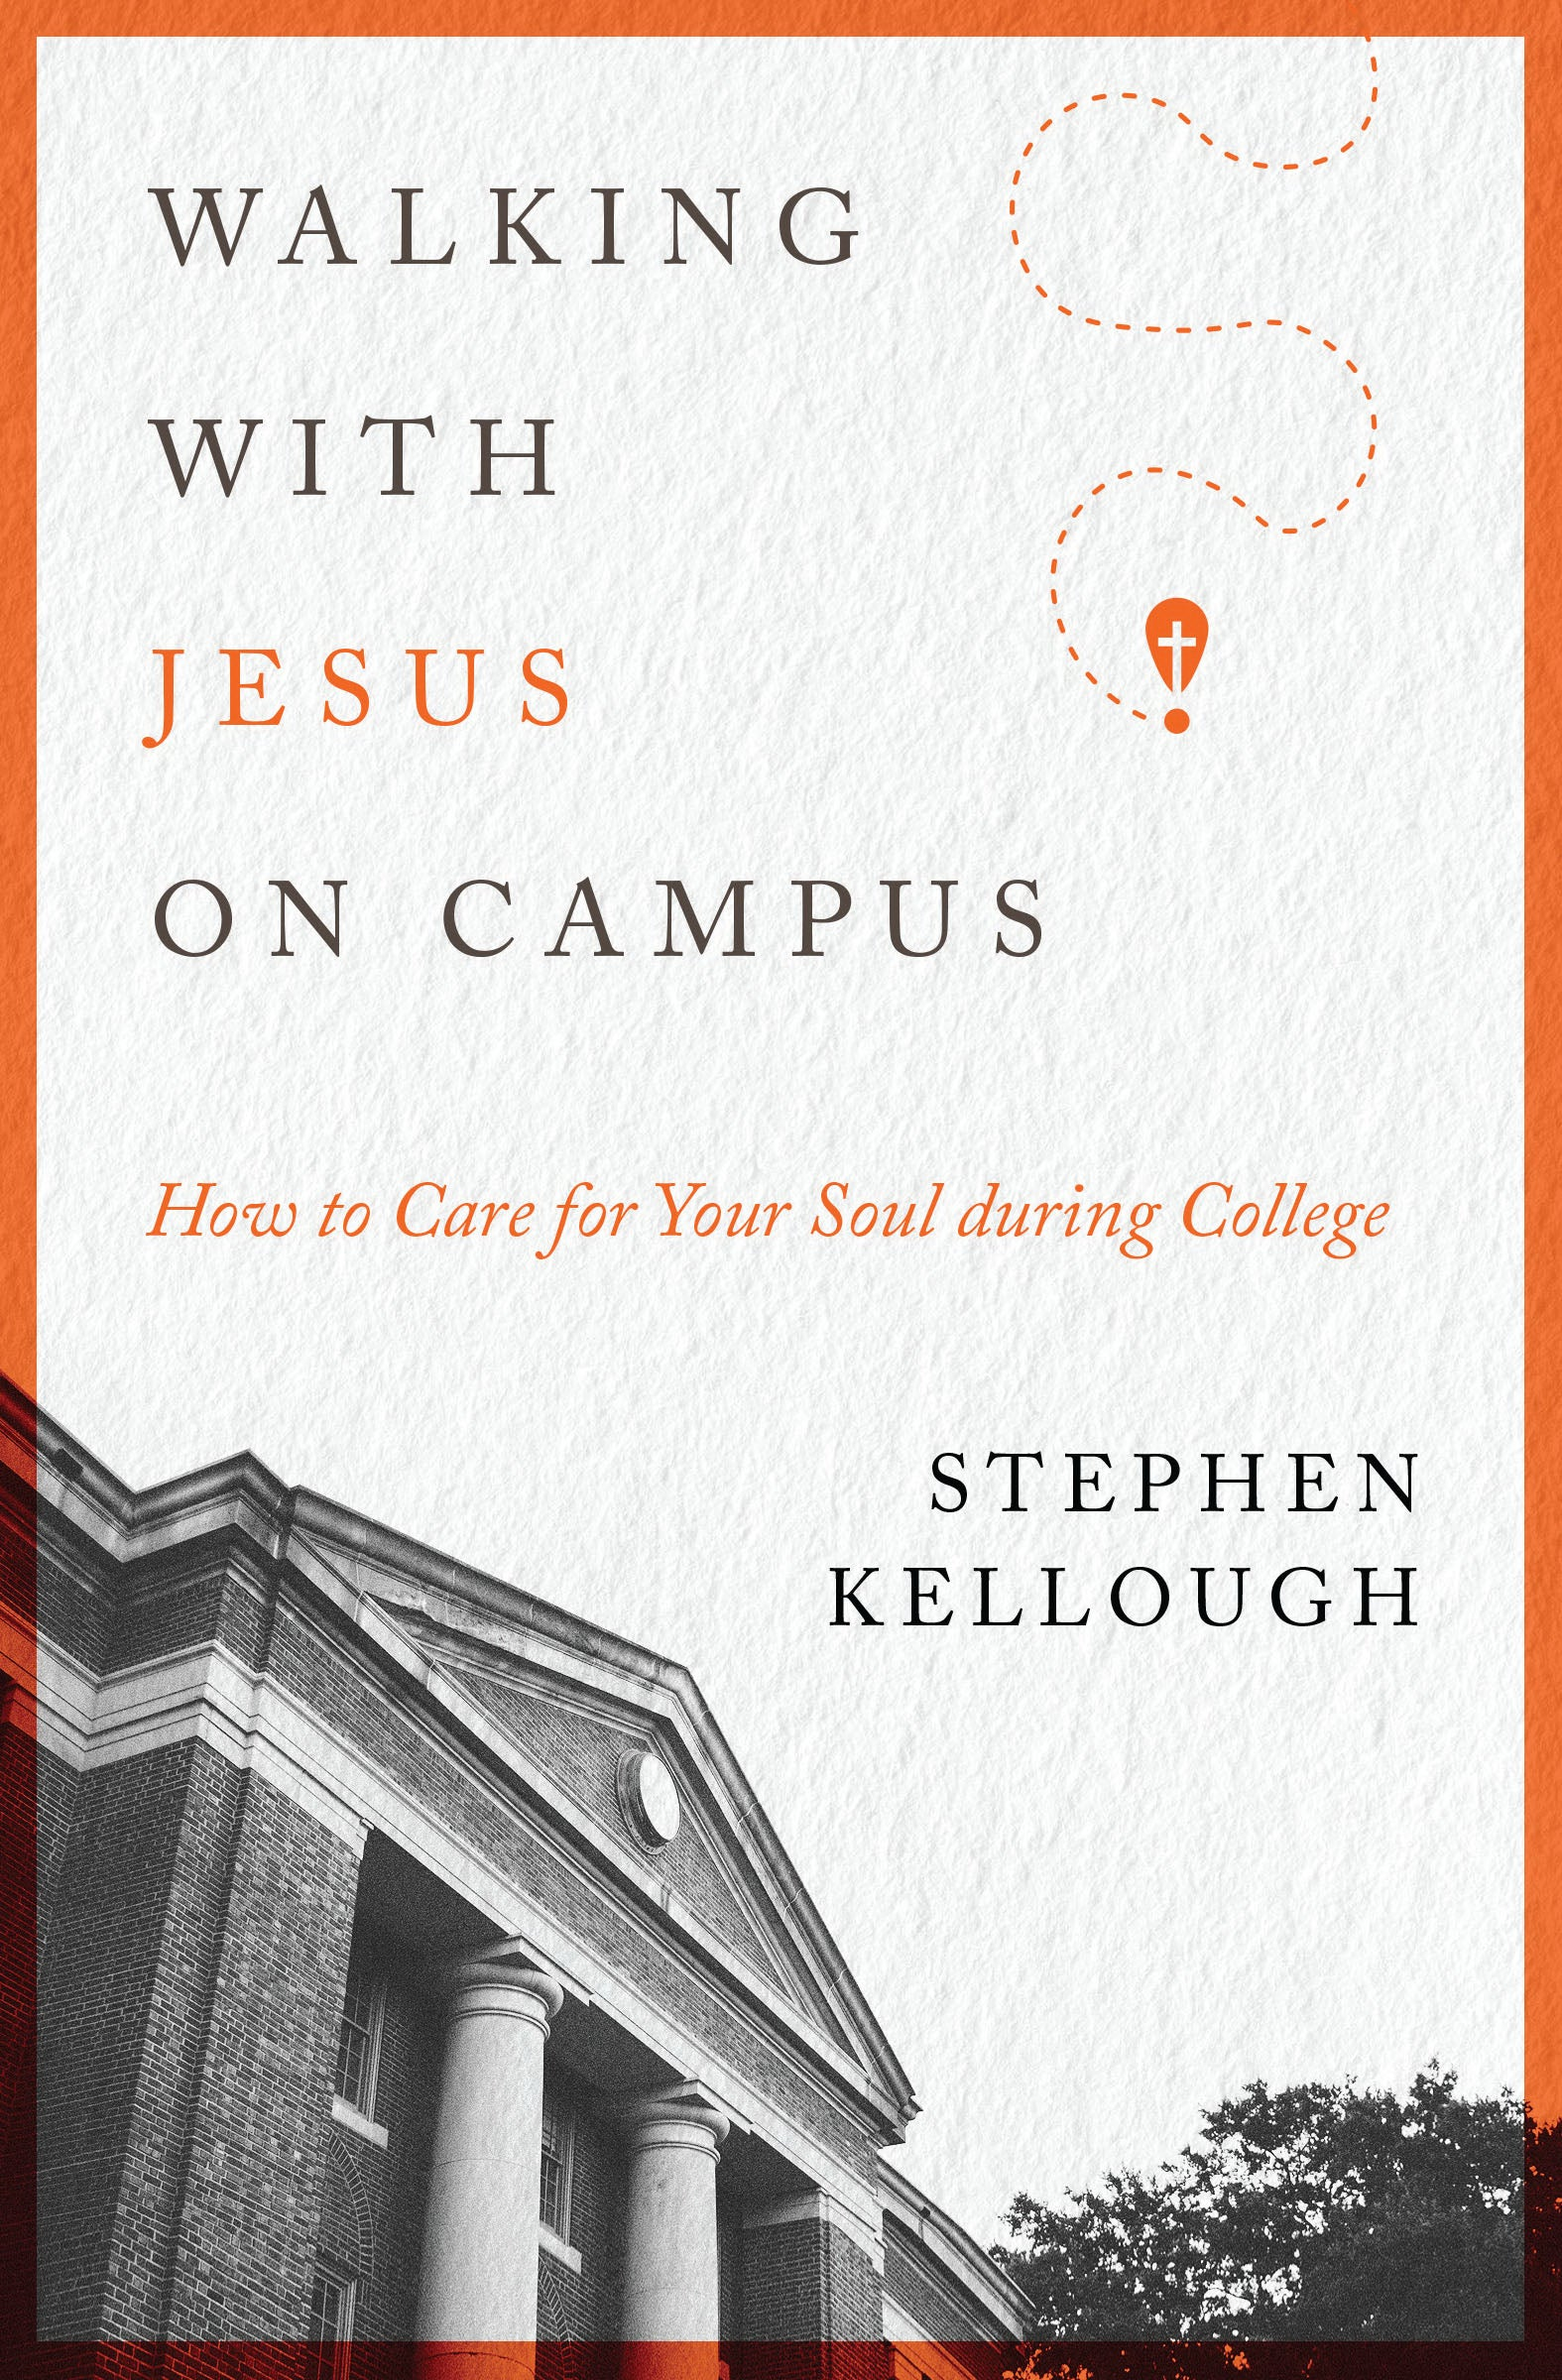 Walking With Jesus On Campus